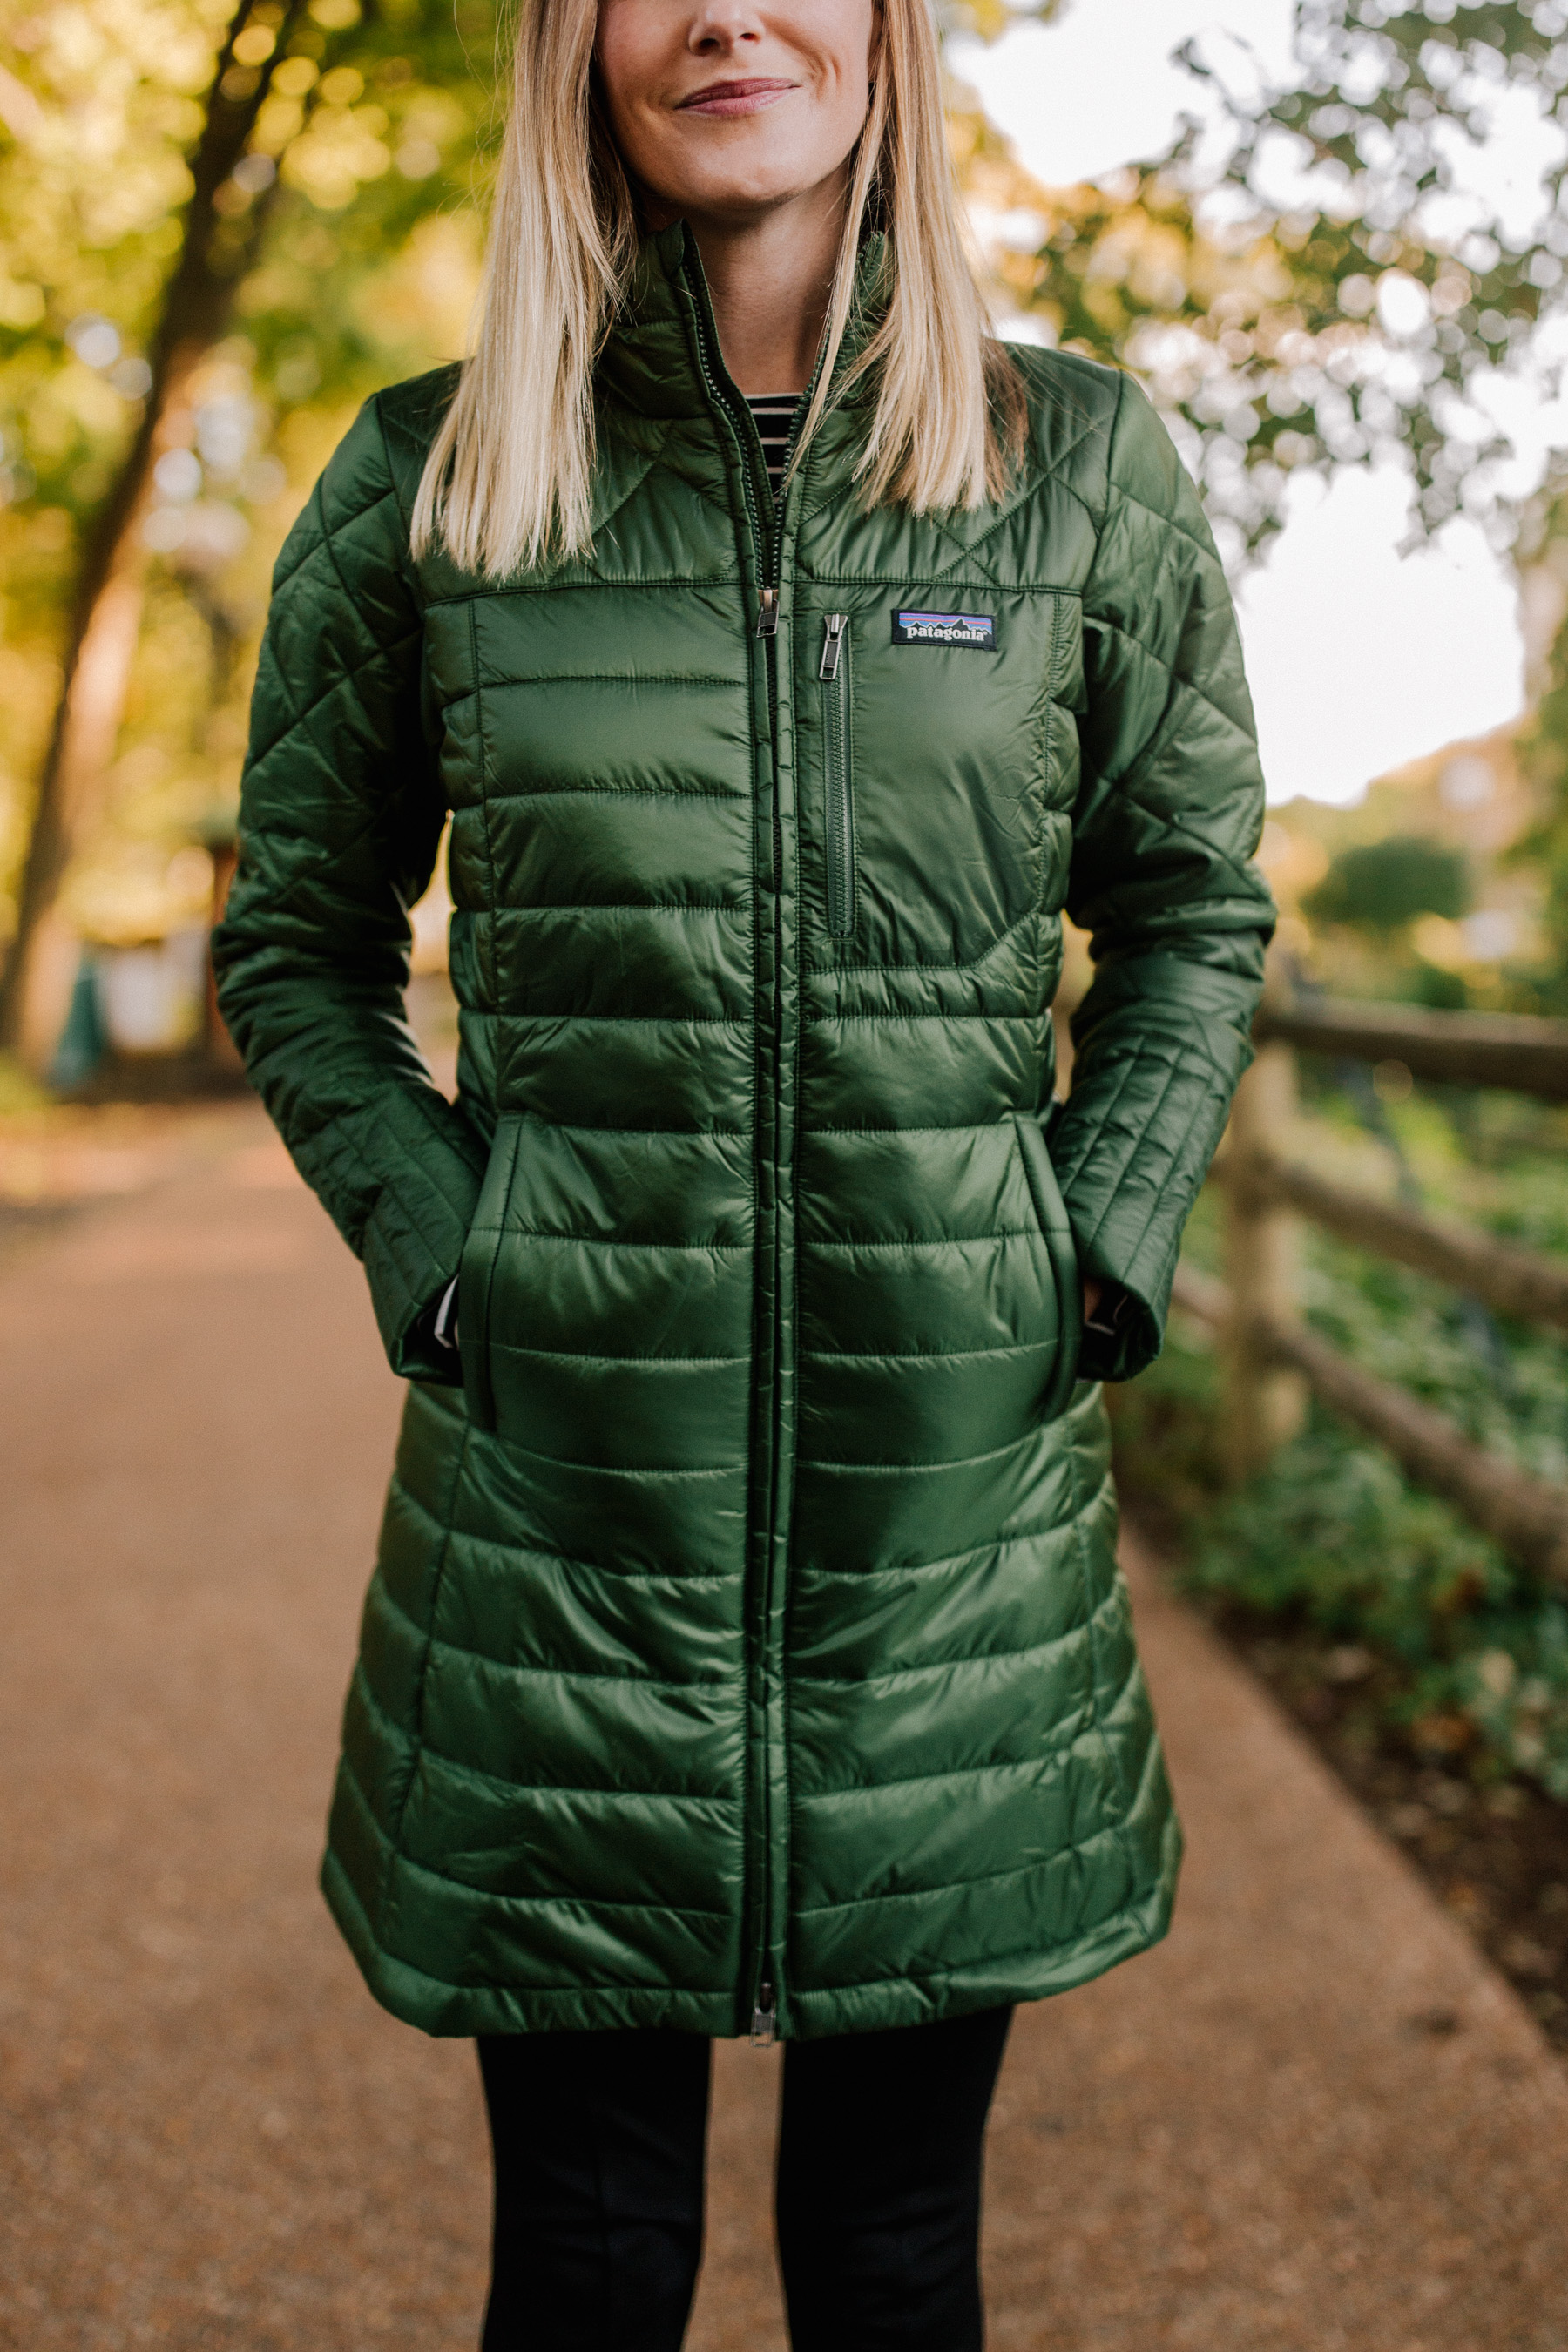 Kelly is wearing a 'Radalie' Water Repellent Parka PATAGONIA